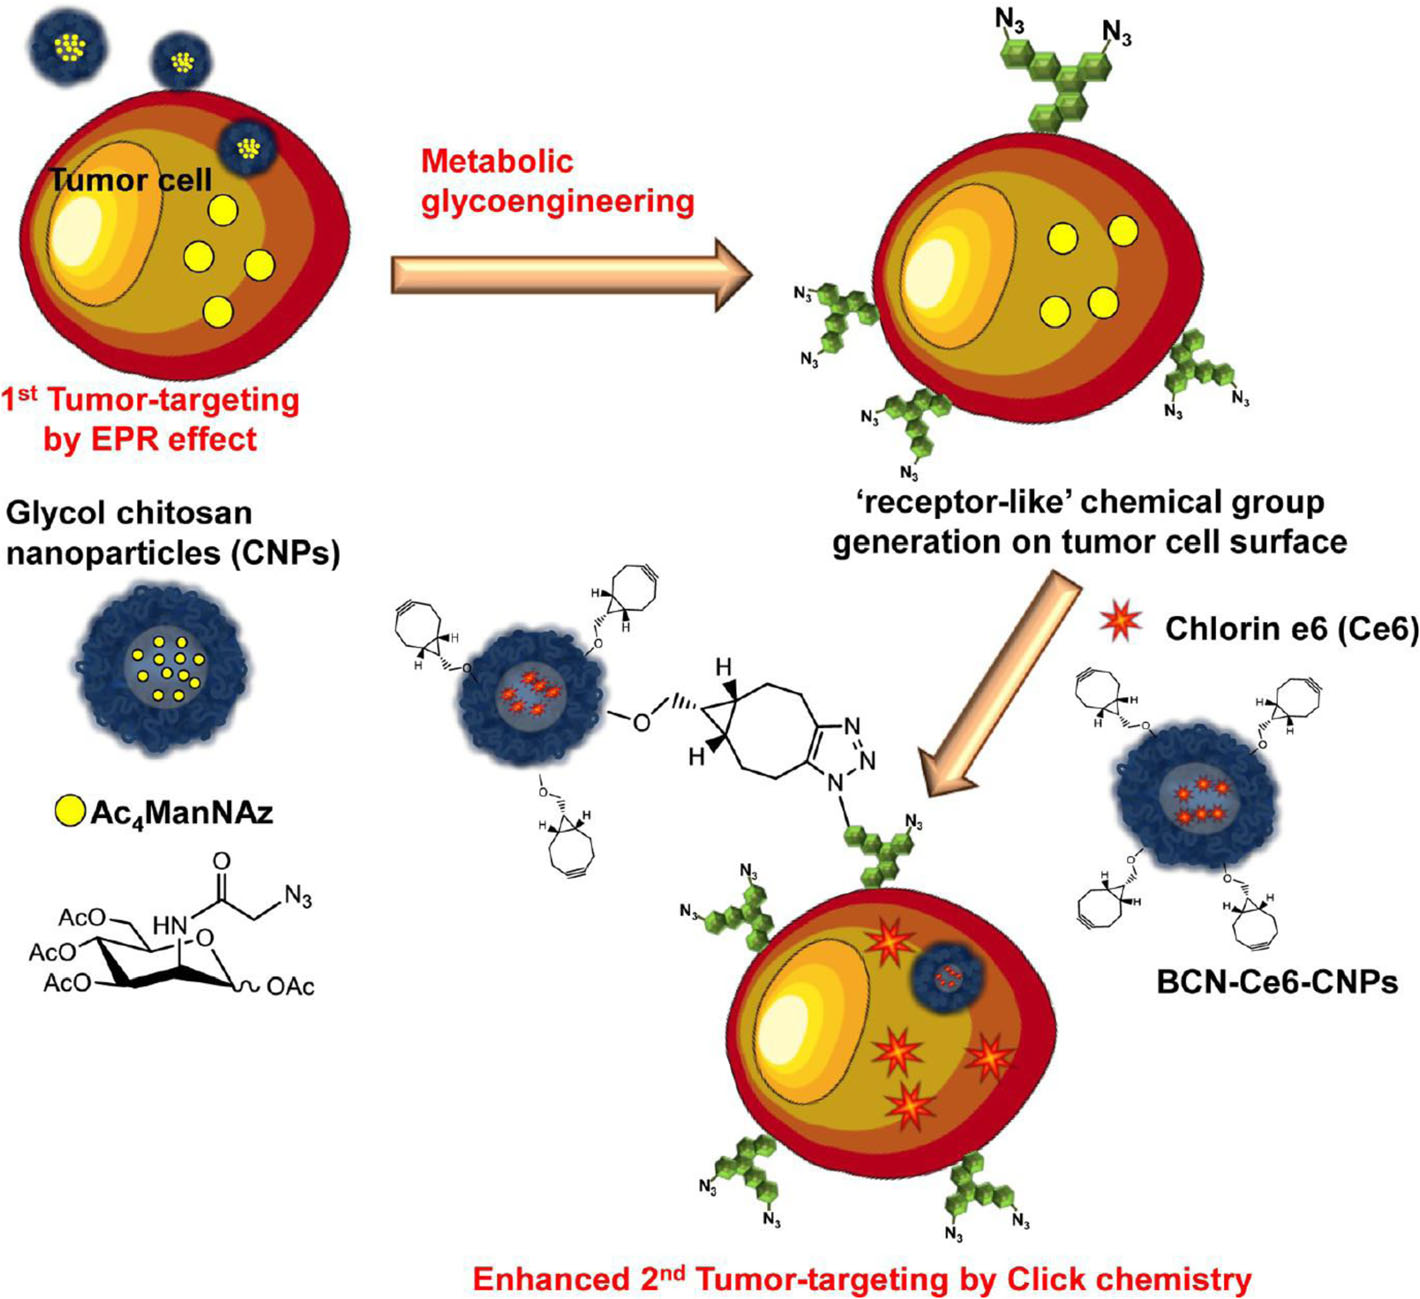 Tumor targeting with bioorthogonal click chemistry and chitosan nanoparticles